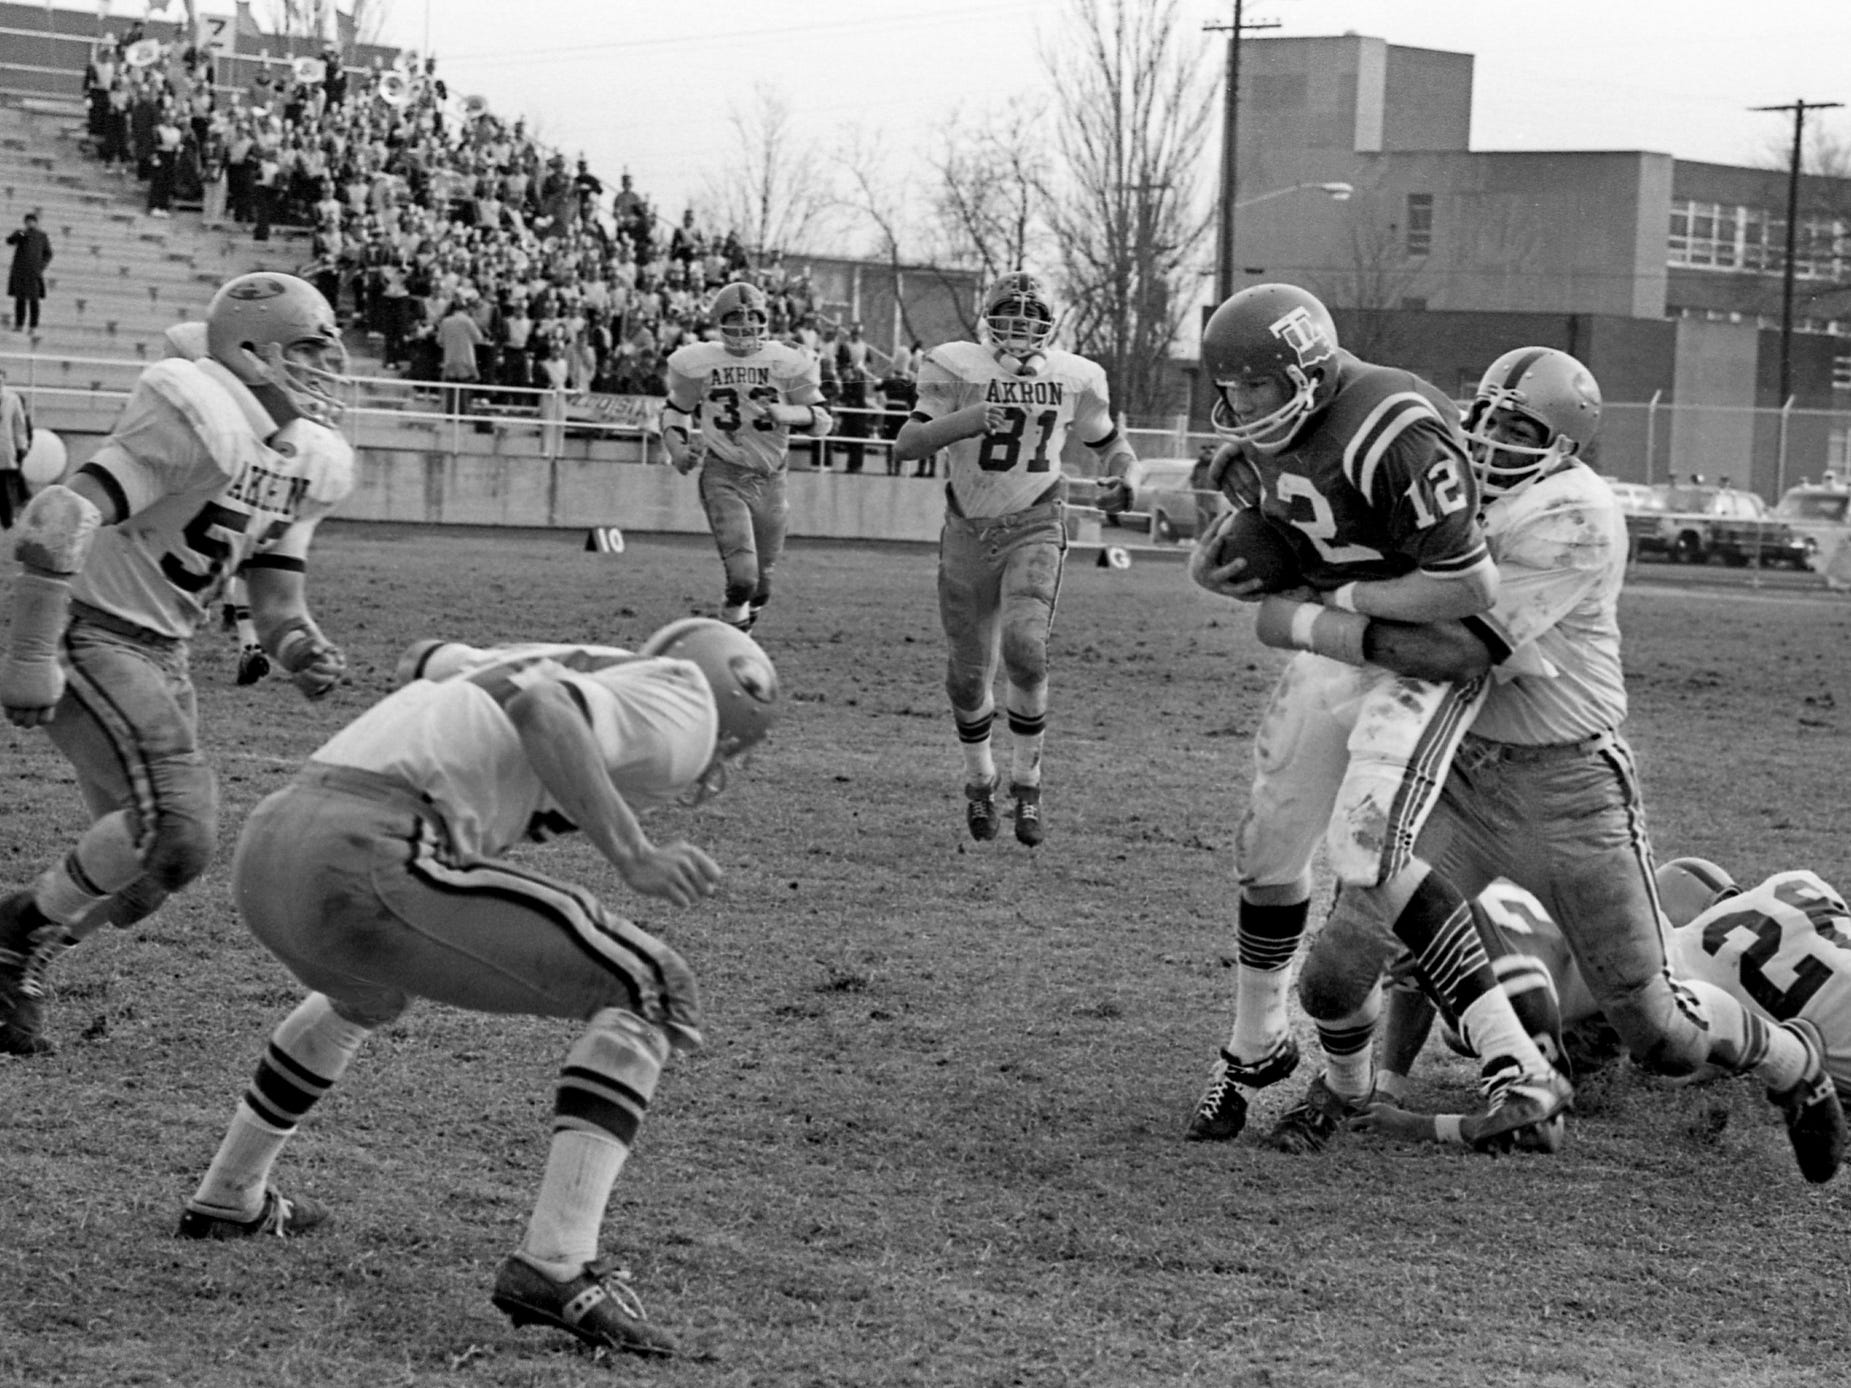 Louisiana Tech quarterback Terry Bradshaw (12) is surrounded by a group of Akron defenders as he leads his team to a 33-13 victory in the fifth annual Grantland Rice Bowl at Middle Tennessee State University on Dec. 14, 1968. Bradshaw passed for two touchdowns and ran in two more.